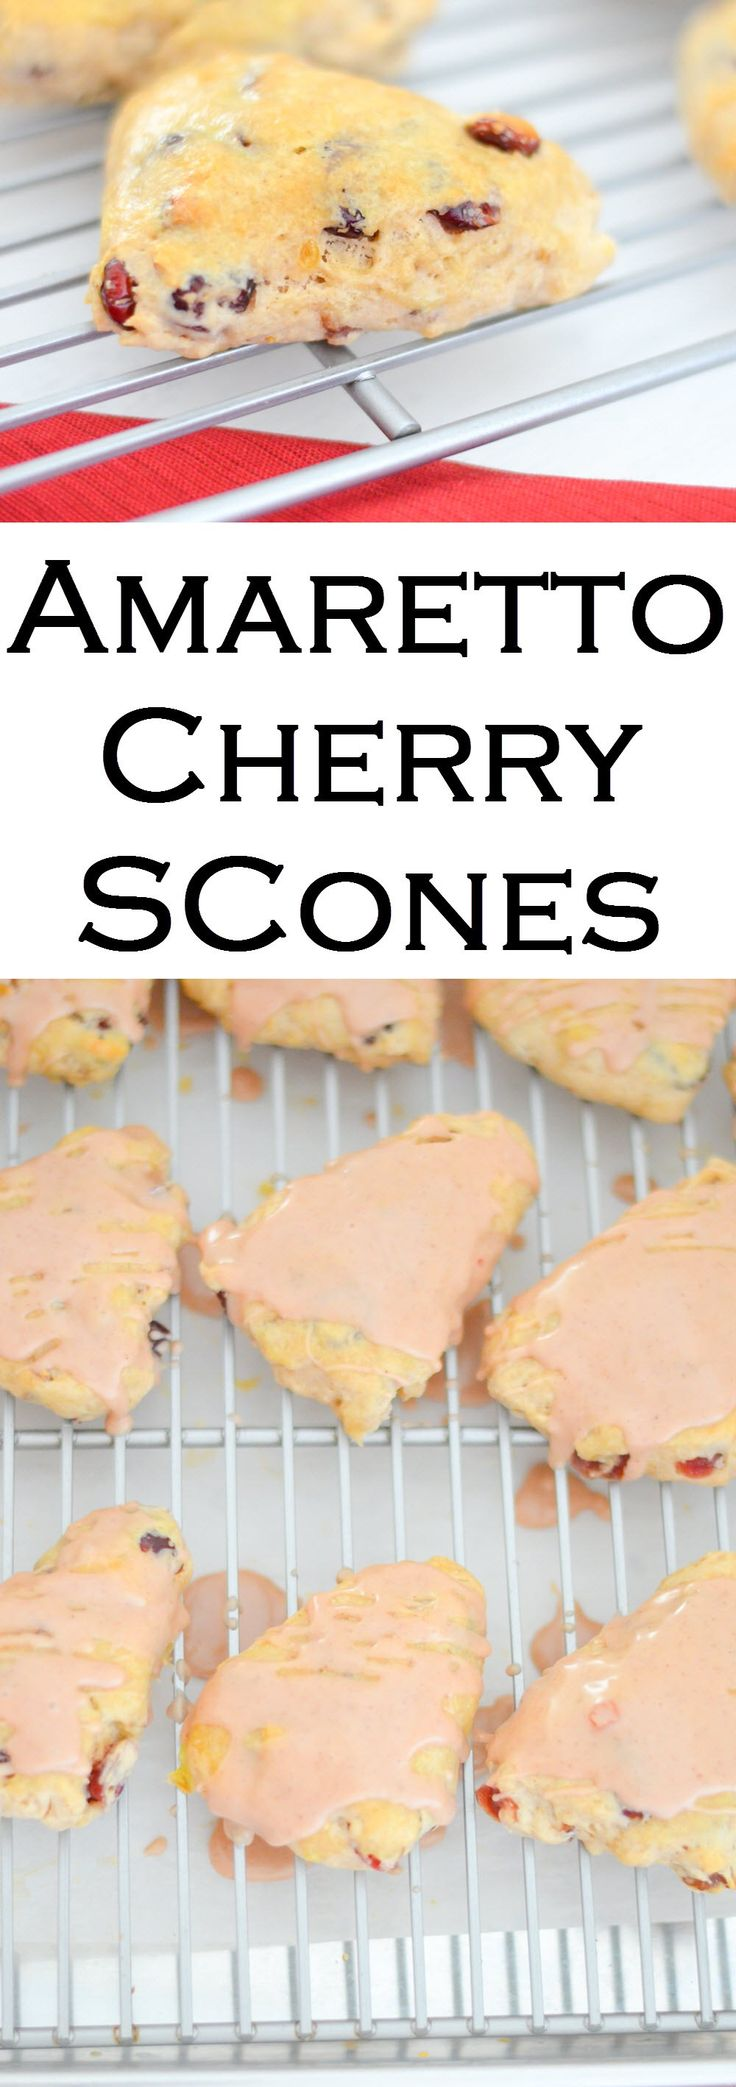 Mini Amaretto Cherry Scones for breakfast, brunch, and high tea. Delicious and easy scones made with dried cherries. #amaretto #cherry #scones #breakfast #brunch #hightea #driedcherries #delicious #entertaining #snack #treat #foodblogger #lucismorsels